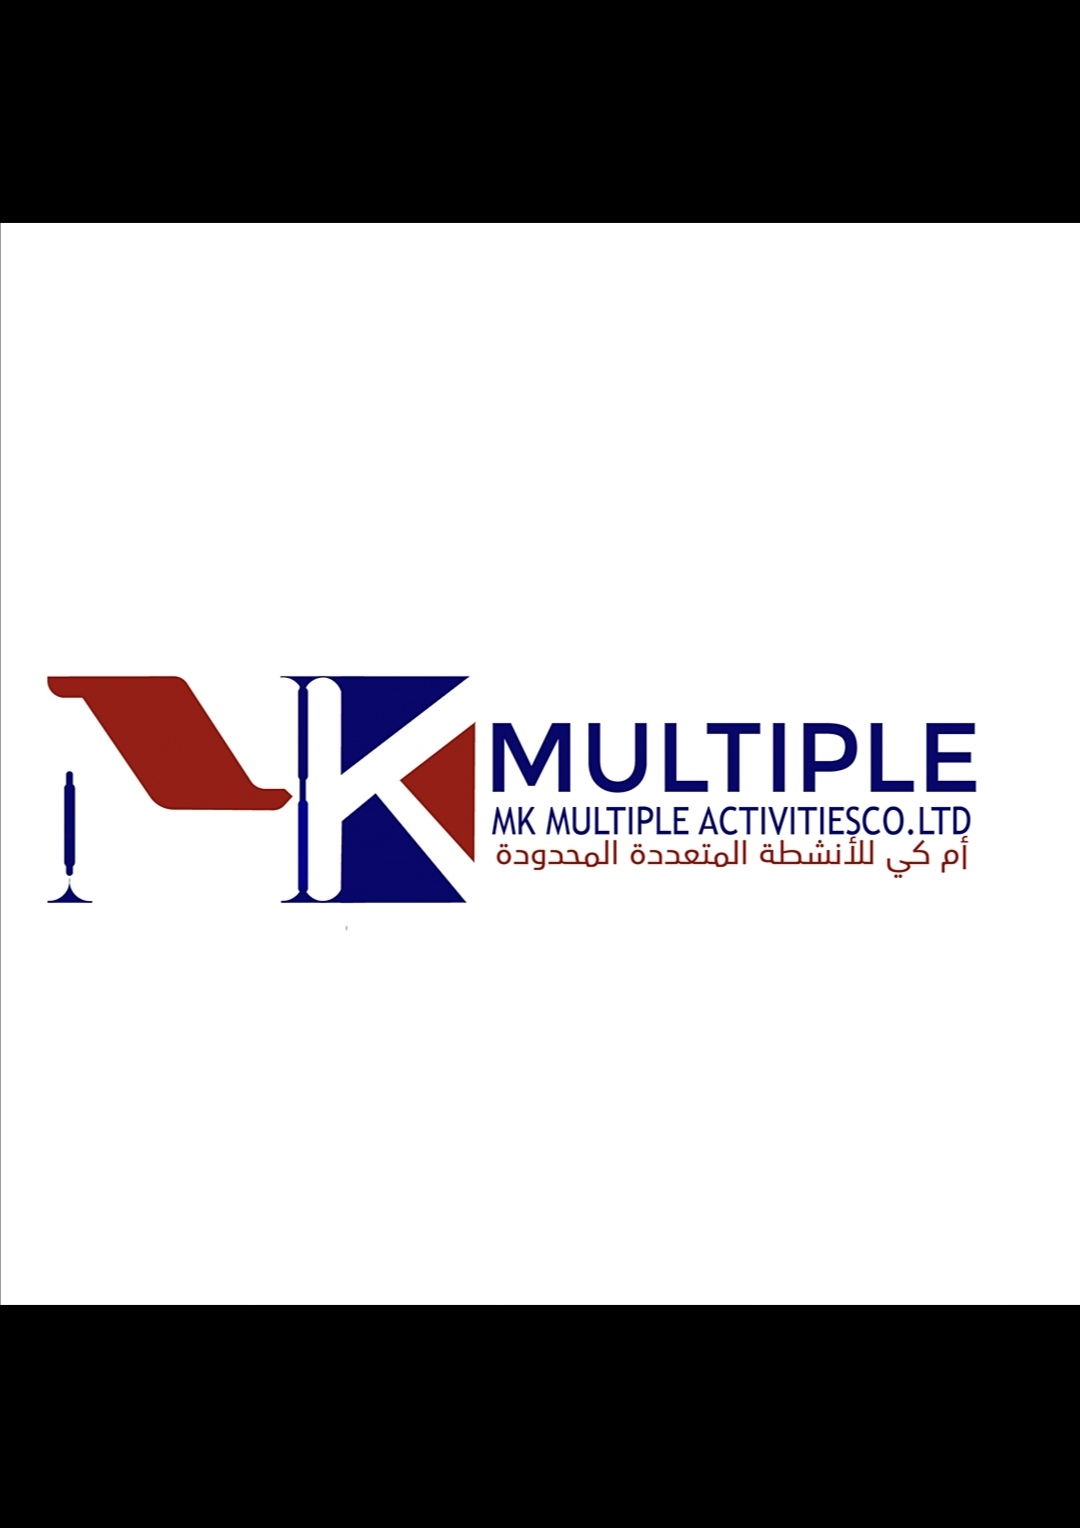 Mkmultiple Profile Picture